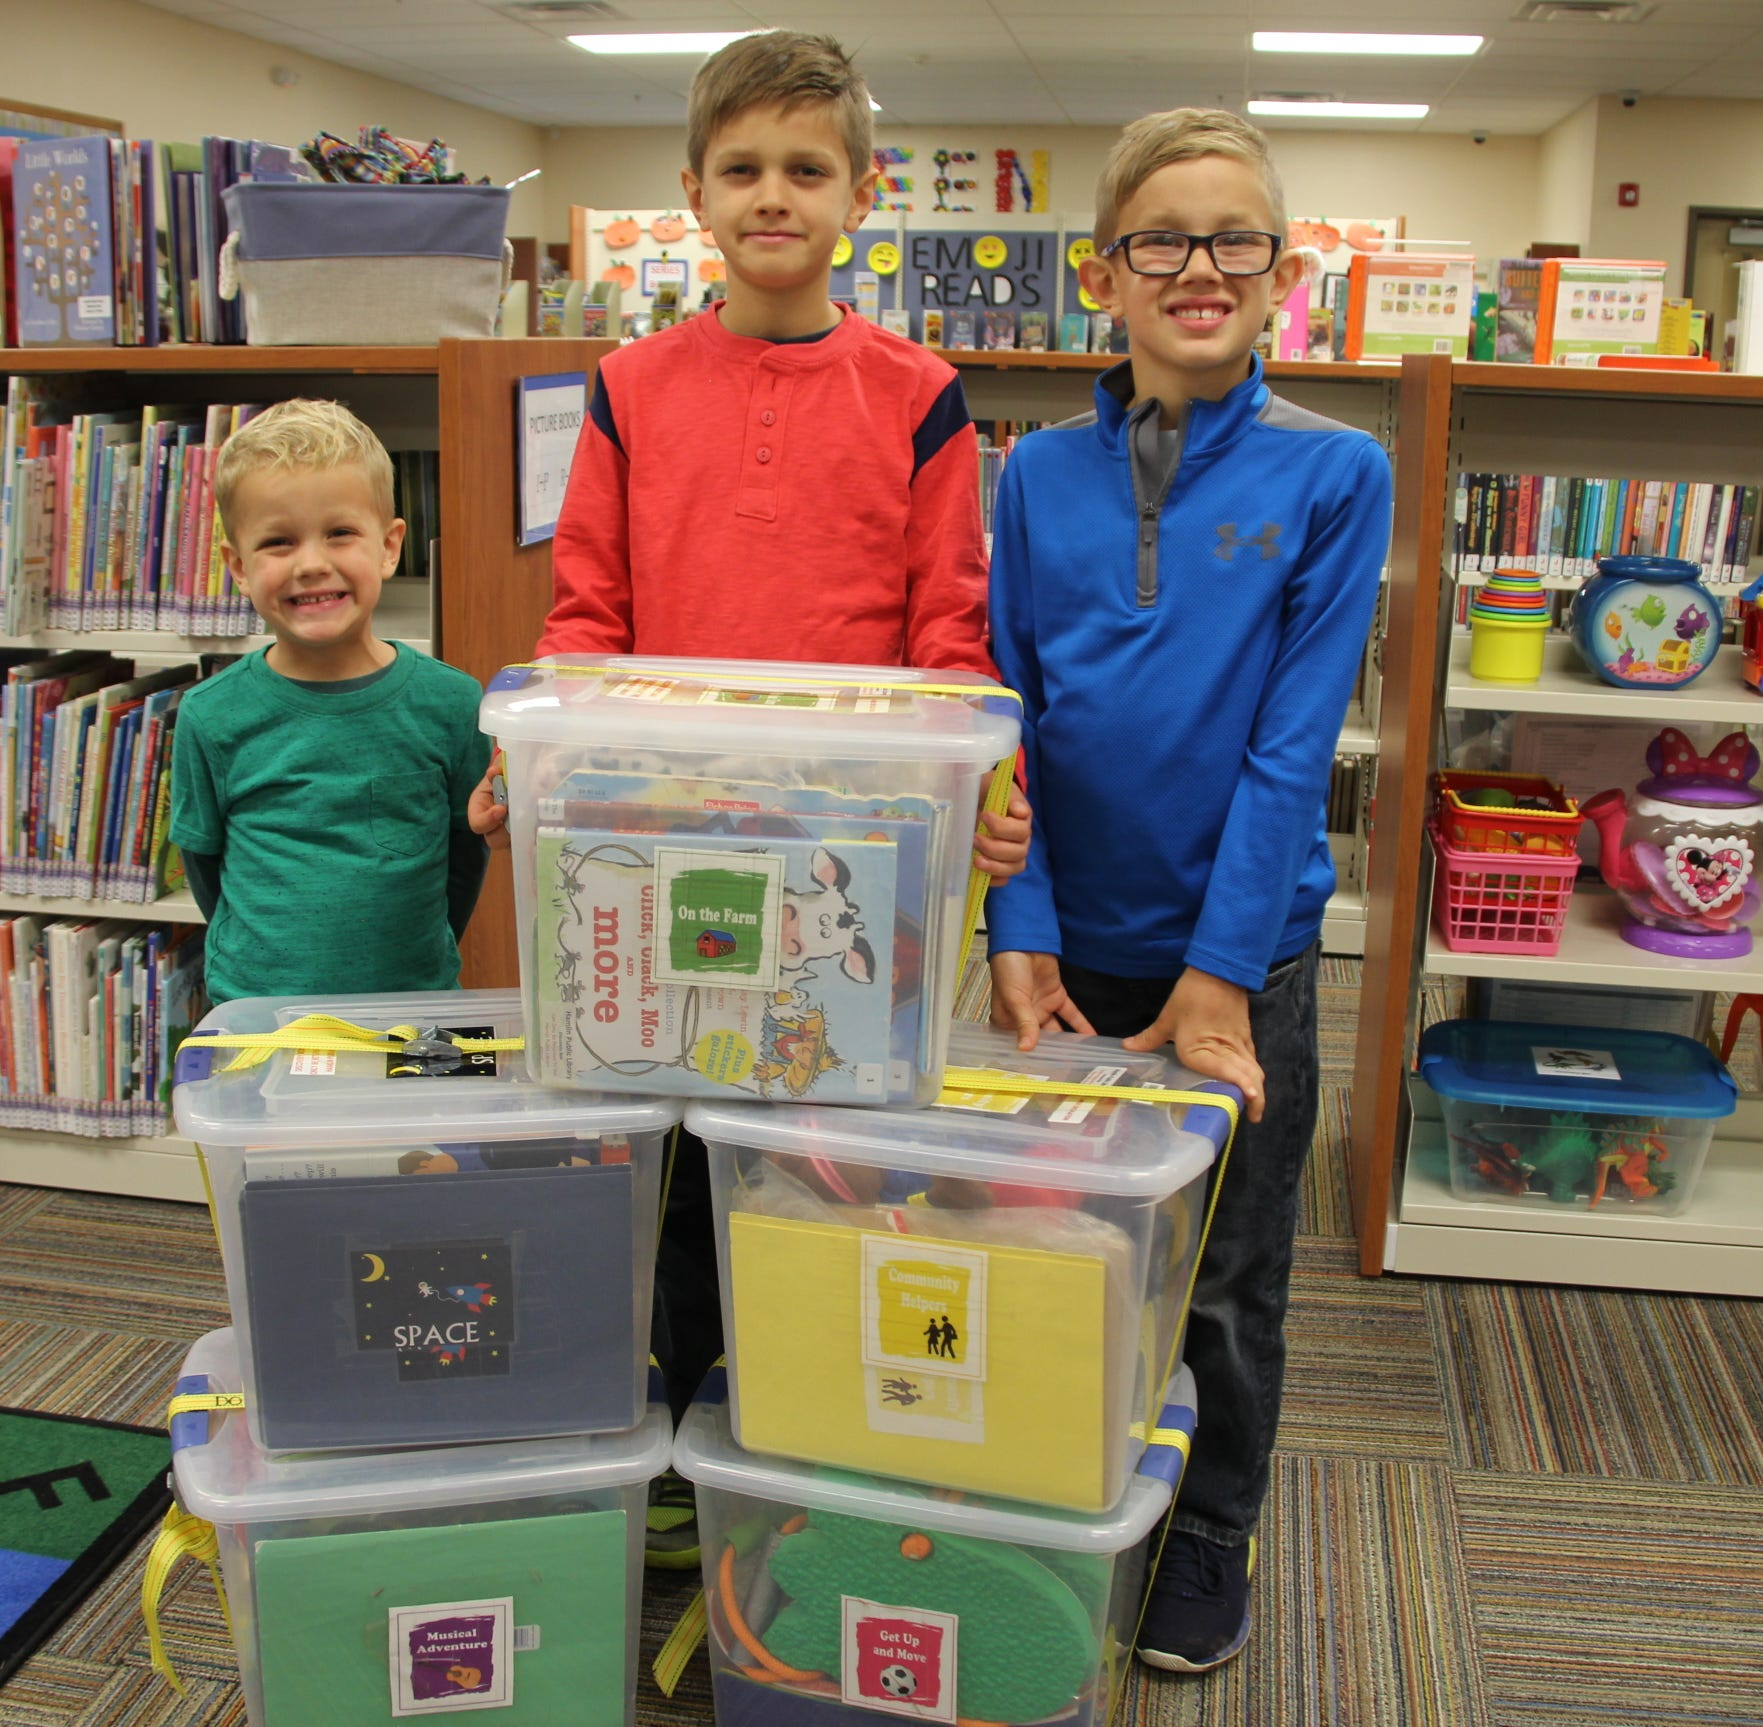 In memory of their infant, Kendall family's heart belongs to libraries